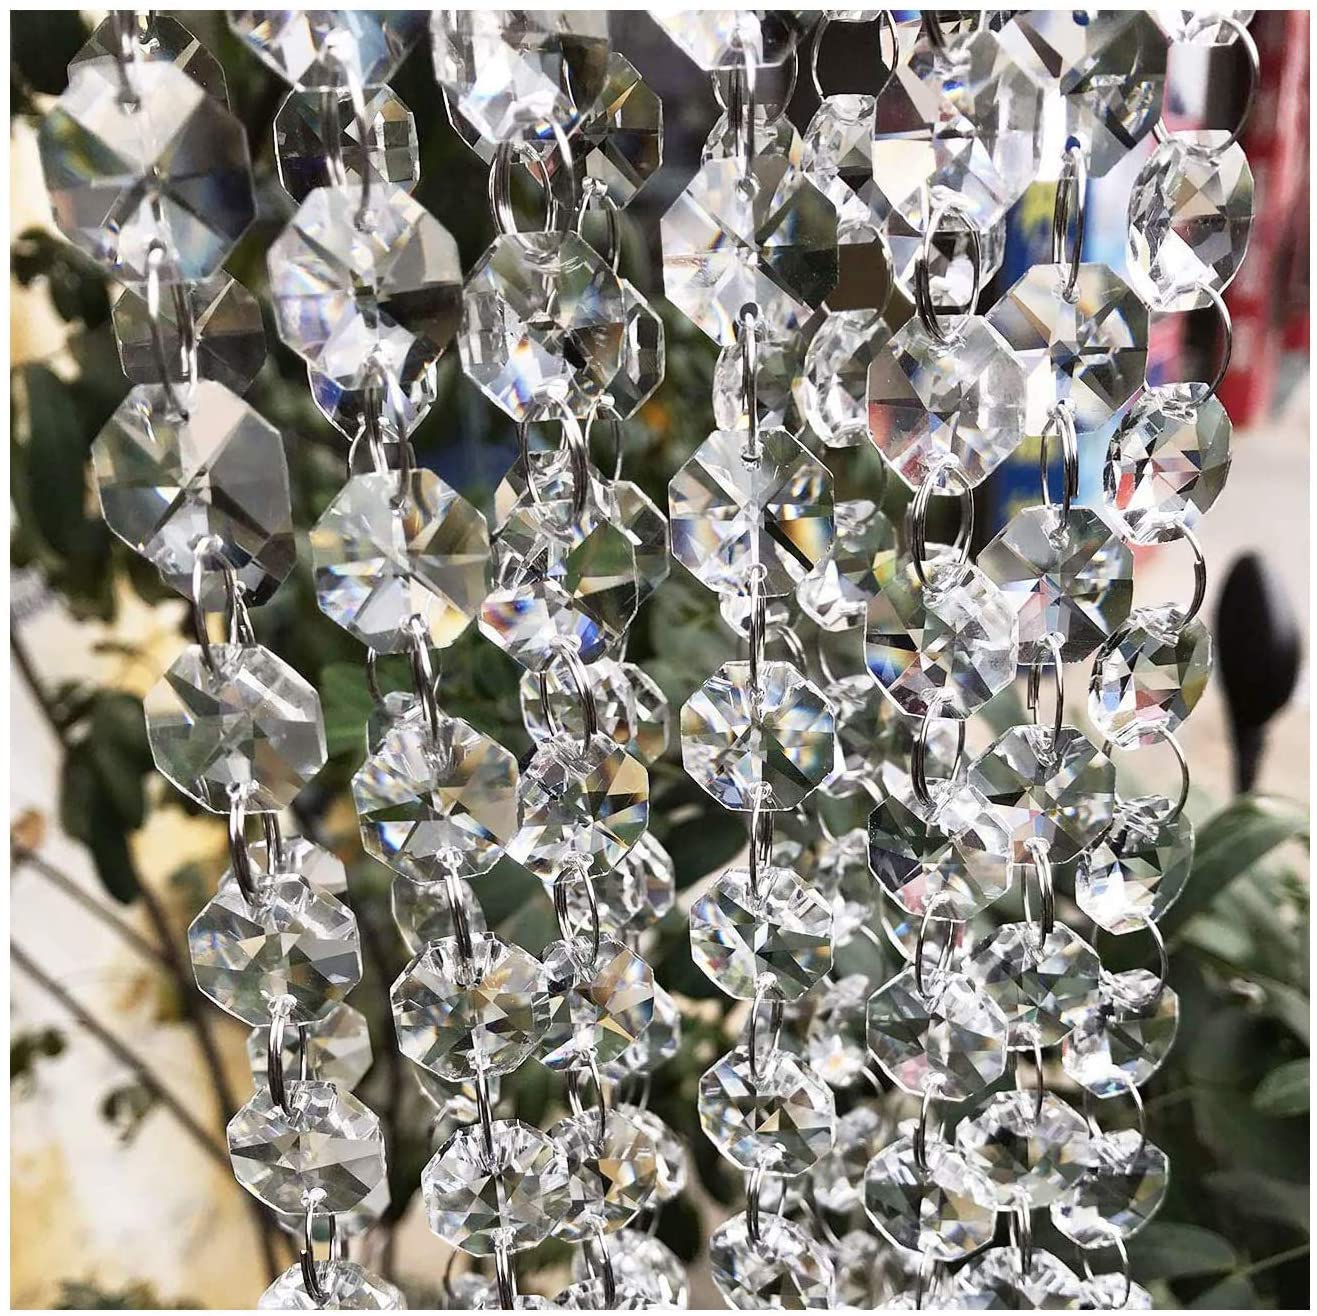 Beads to Restore crystals on chandeliers